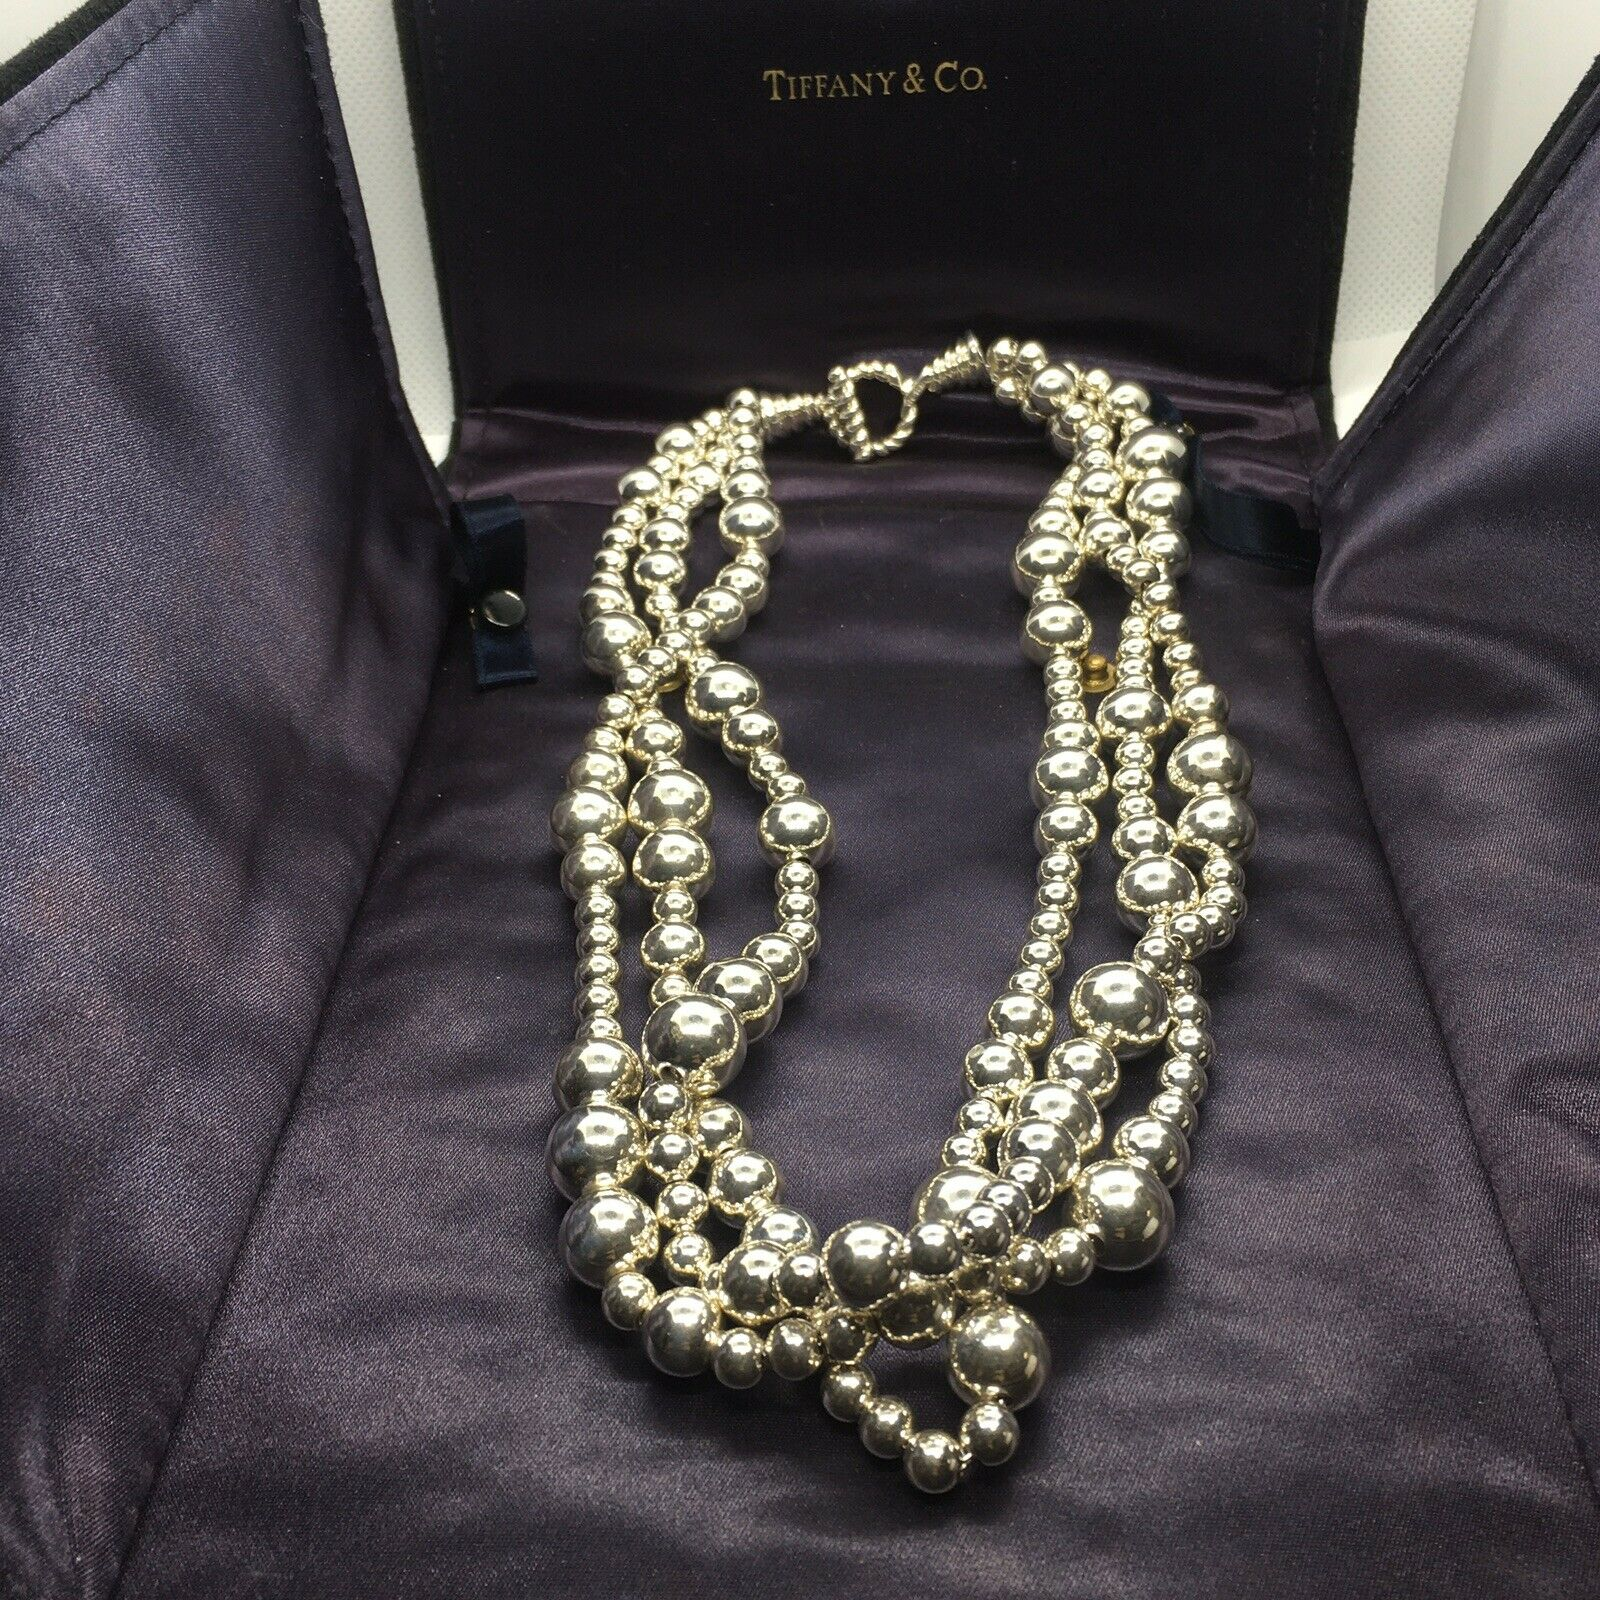 Tiffany Co Multistrand Torsade Graduated Sterling Silver Bead Necklace For Sale Online